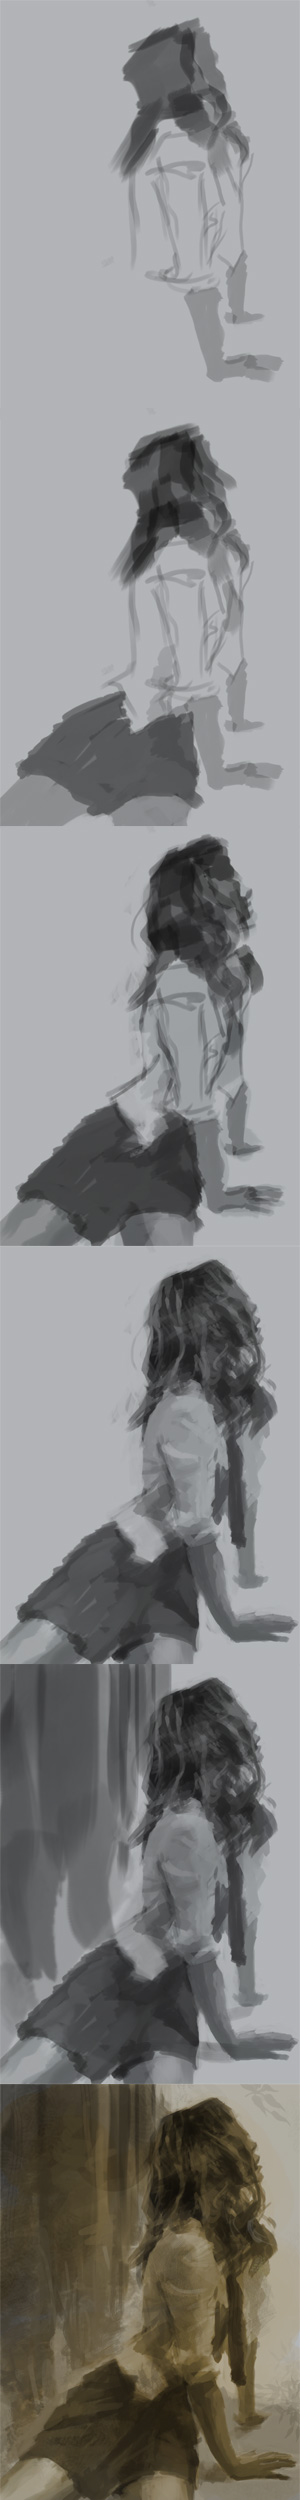 tonal values study Values tonal study female figure